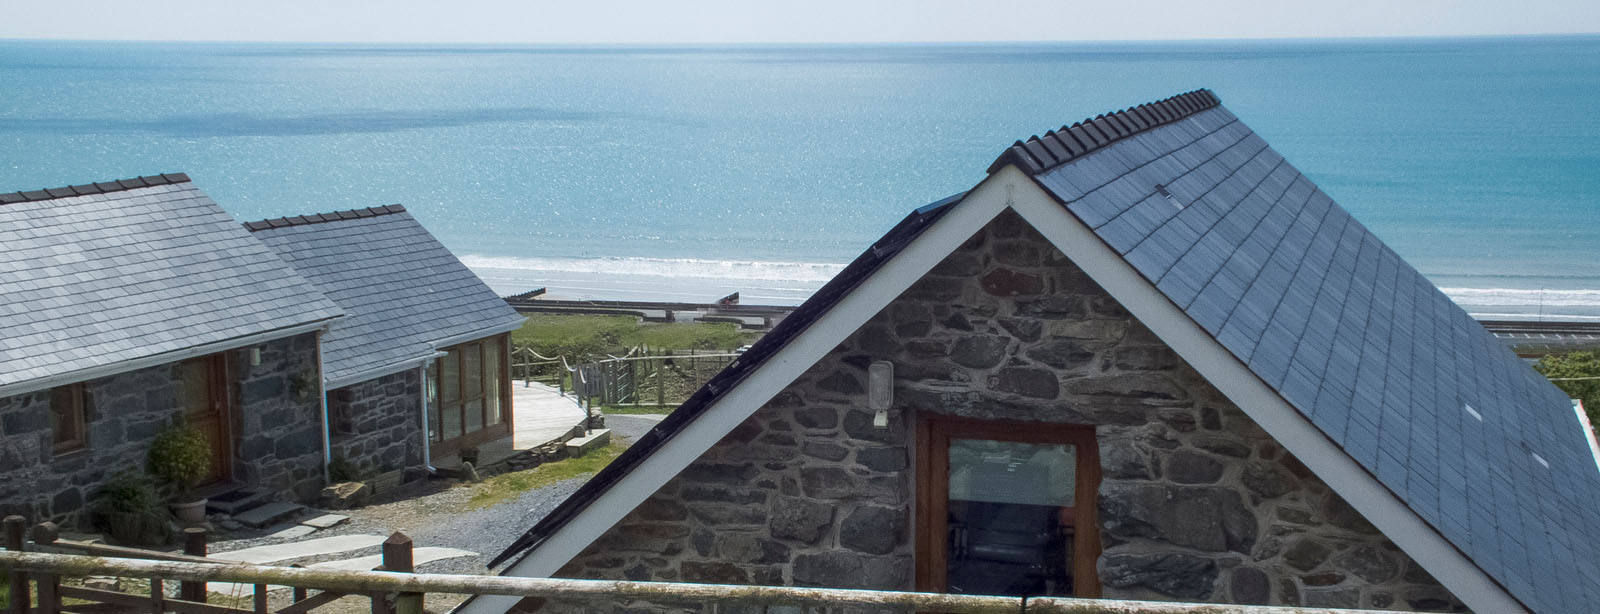 our two cottages beautiful wales rh beautifulwales co uk